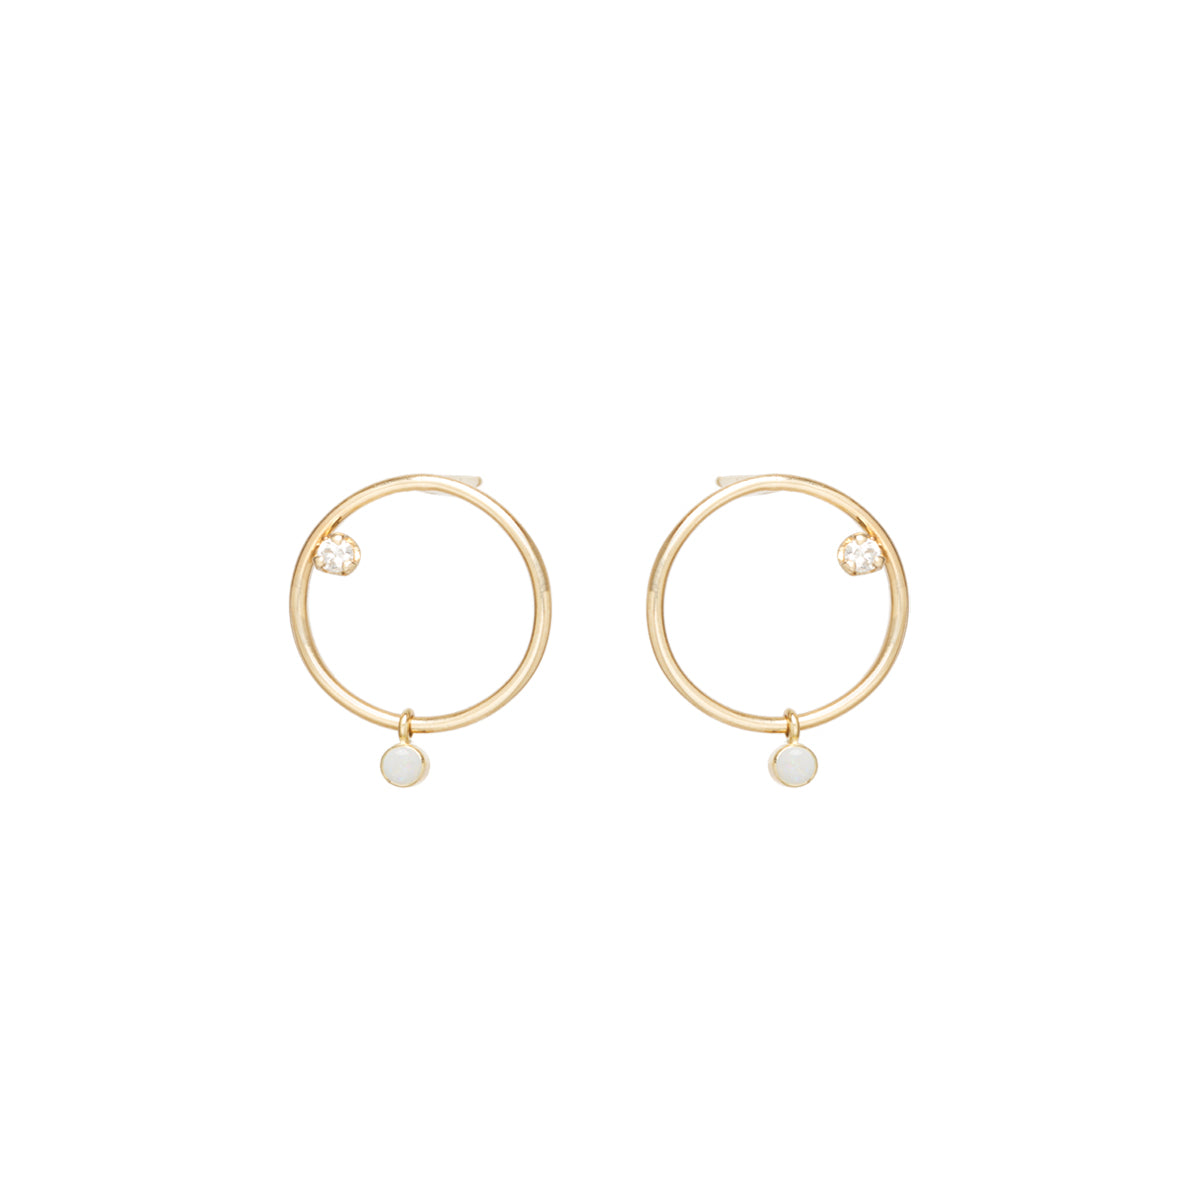 Zoë Chicco 14kt Yellow Gold Dangling Opal & Diamond Small Circle Stud Earrings